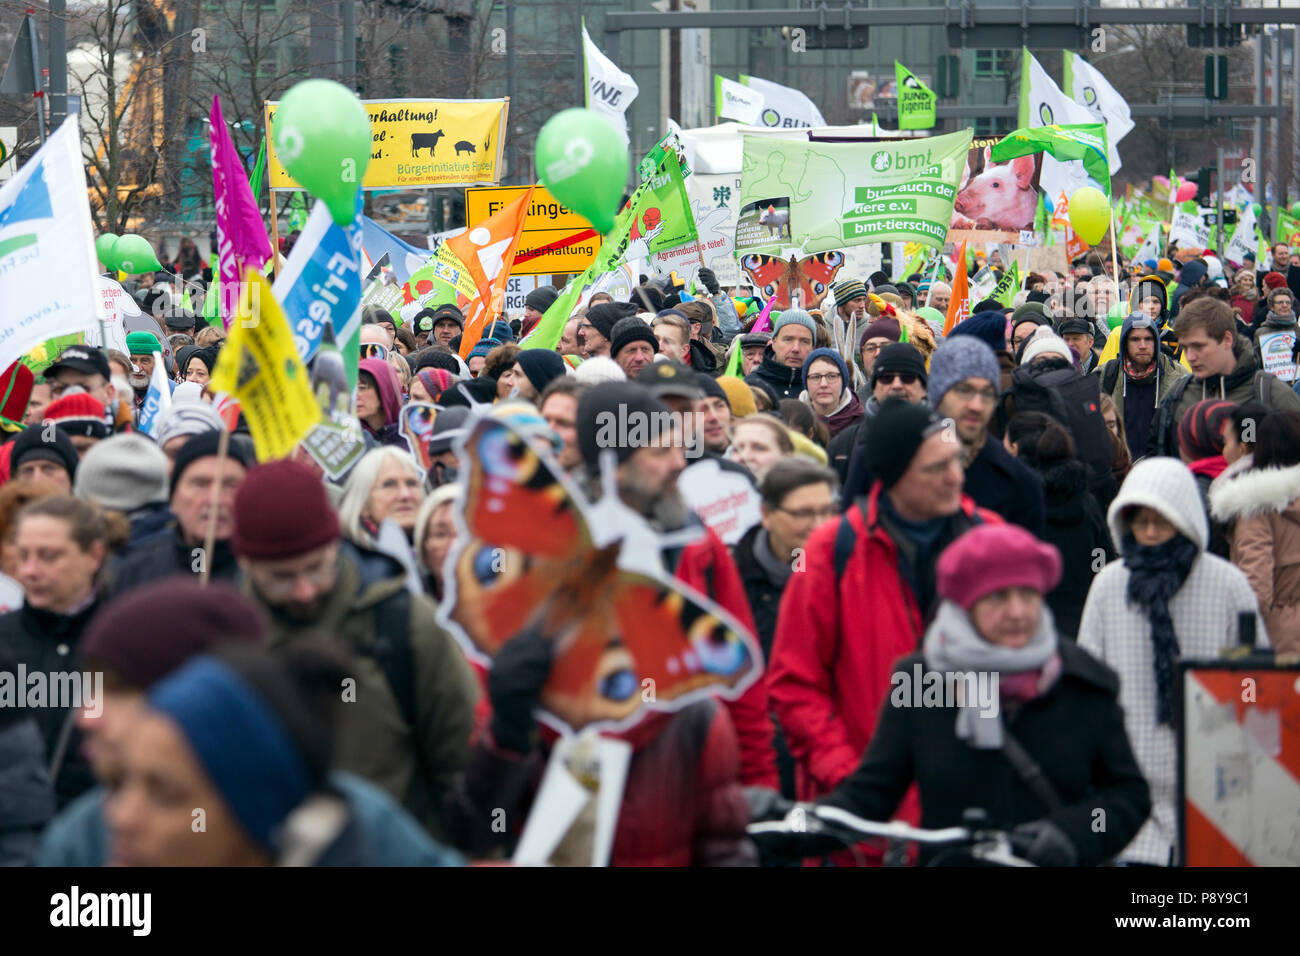 Berlin, Germany, people protesting at the demo - we are sick of it! against industrial agriculture and bee mortality. - Stock Image